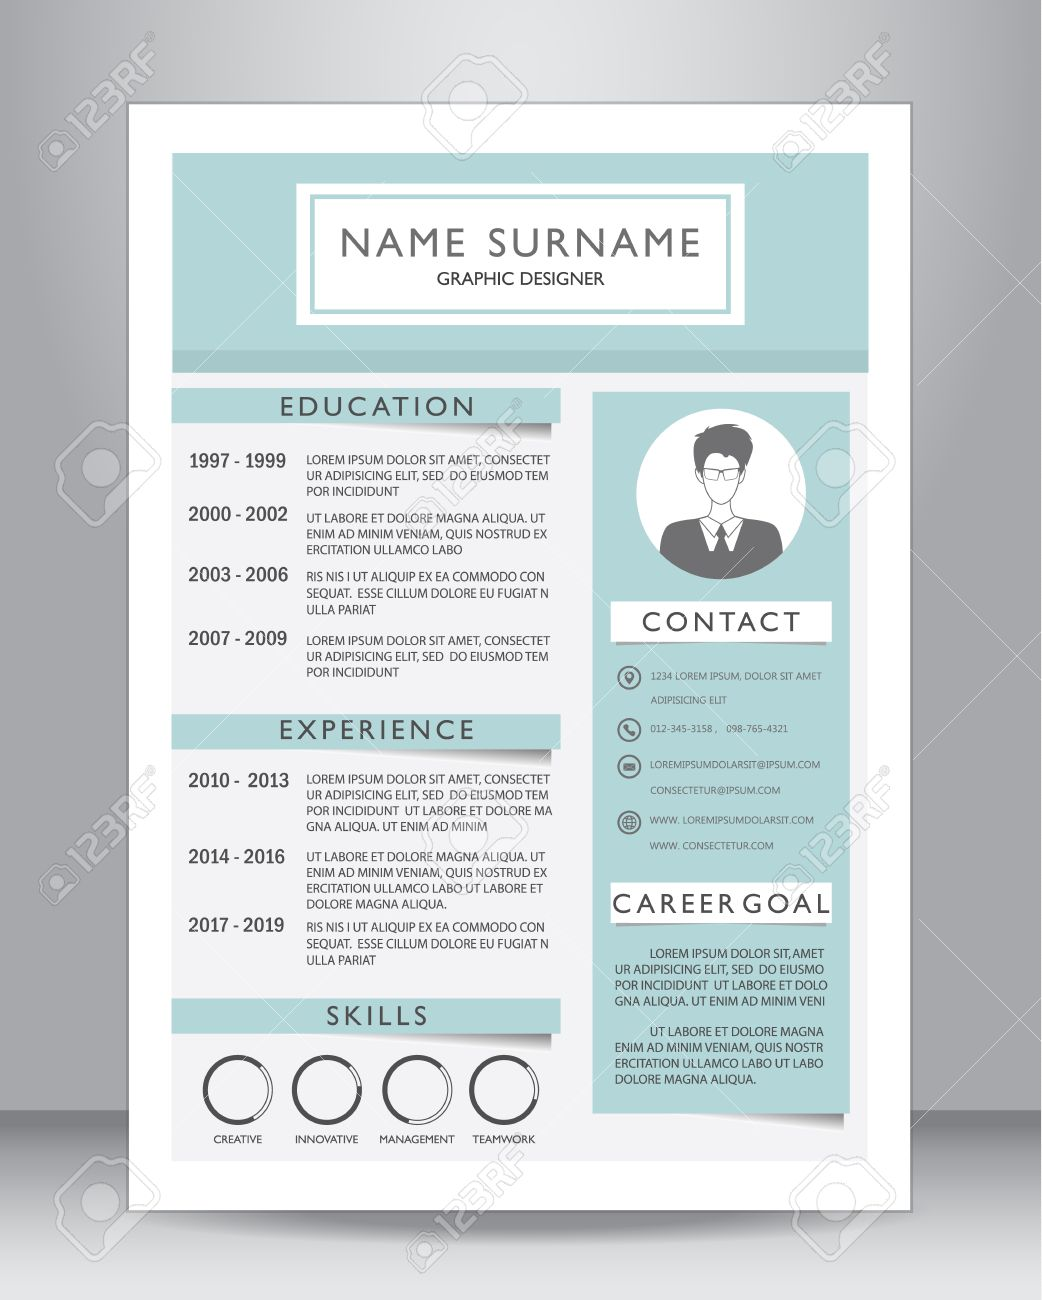 job resume or cv template layout template in a4 size vector job resume or cv template layout template in a4 size vector illustration stock vector